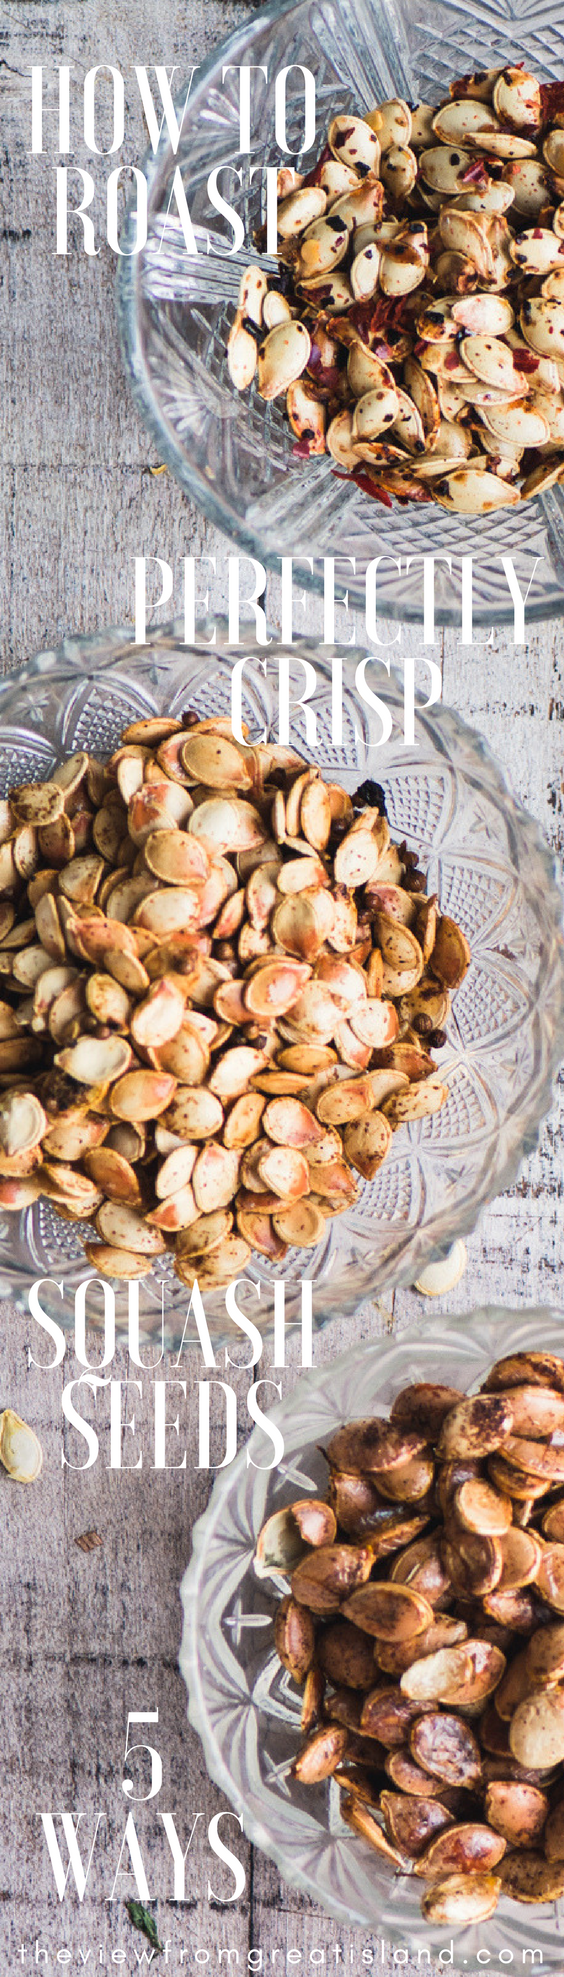 How to Roast Perfectly Crisp Squash Seeds ~ the secret to super crisp and delicious roasted winter squash seeds is simple and oh so easy...I'll show you how to make five different varieties and five different flavors! #roastedsquashseeds #roastedpumpkinseeds #pumpkinseeds #wintersquash #snack #healthysnack #appetizer #paleo #glutenfree #whole30